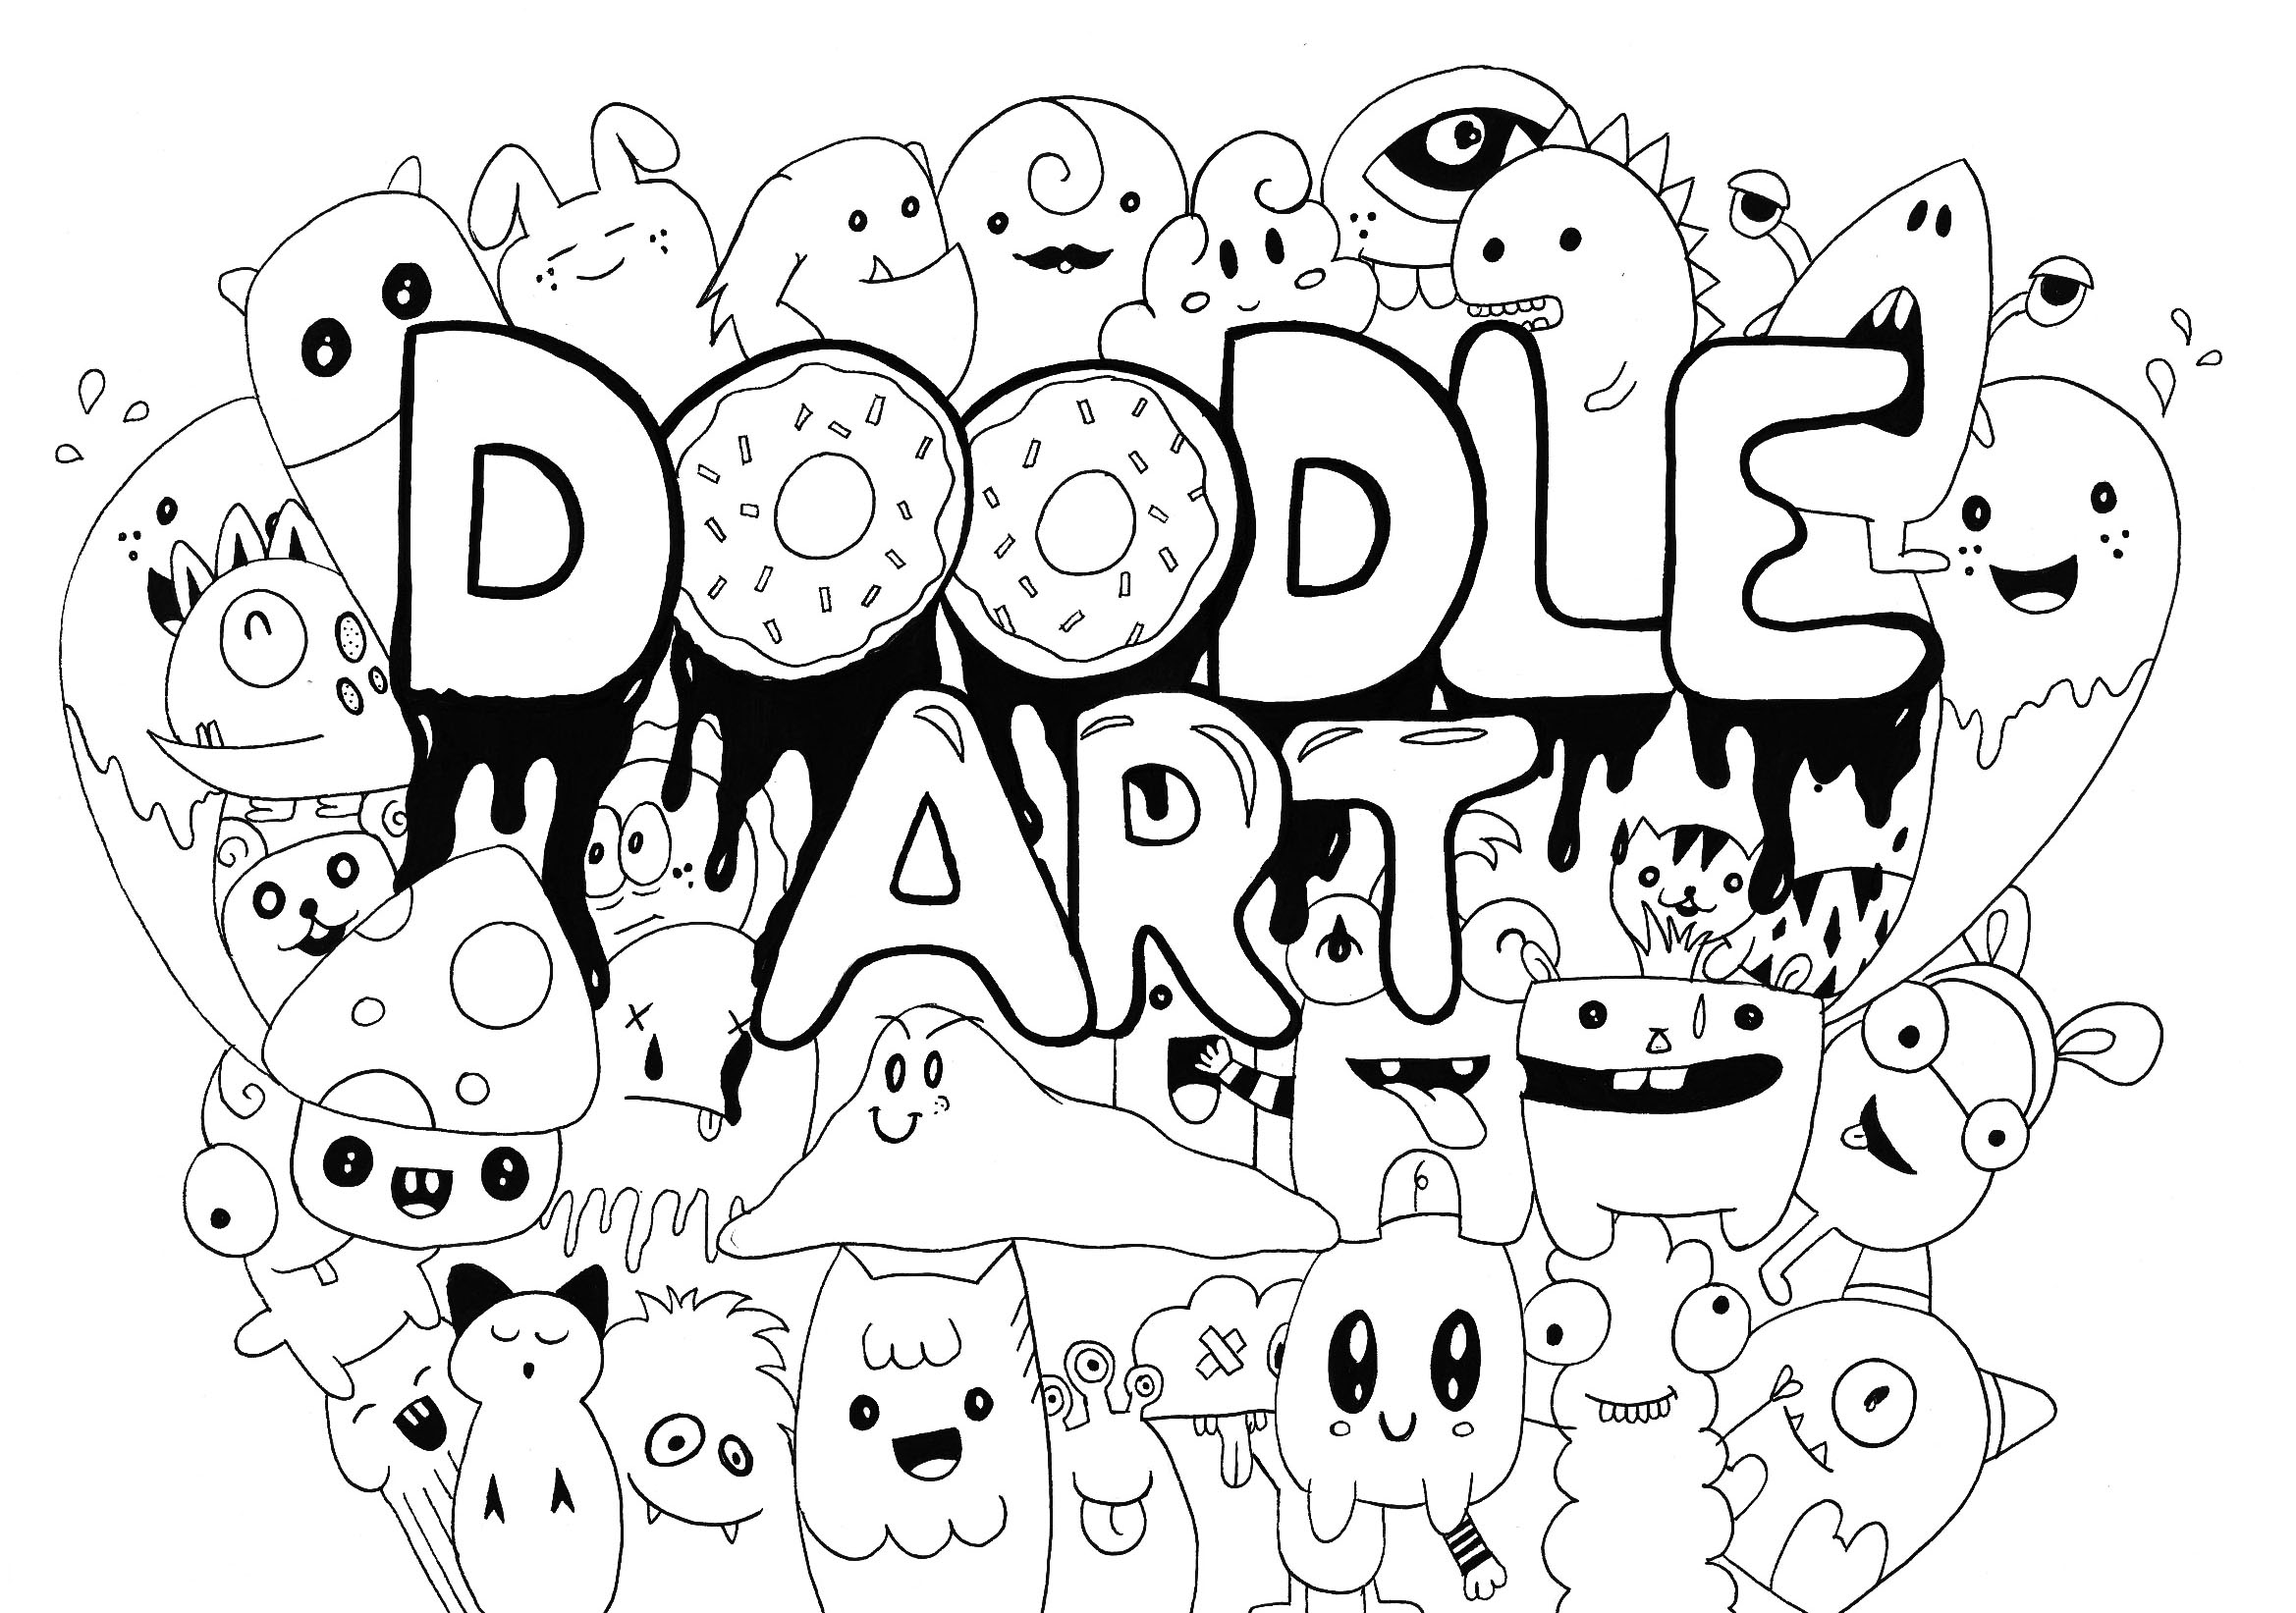 coloring page adults doodle art rachel free to print - Coloring Pages Art